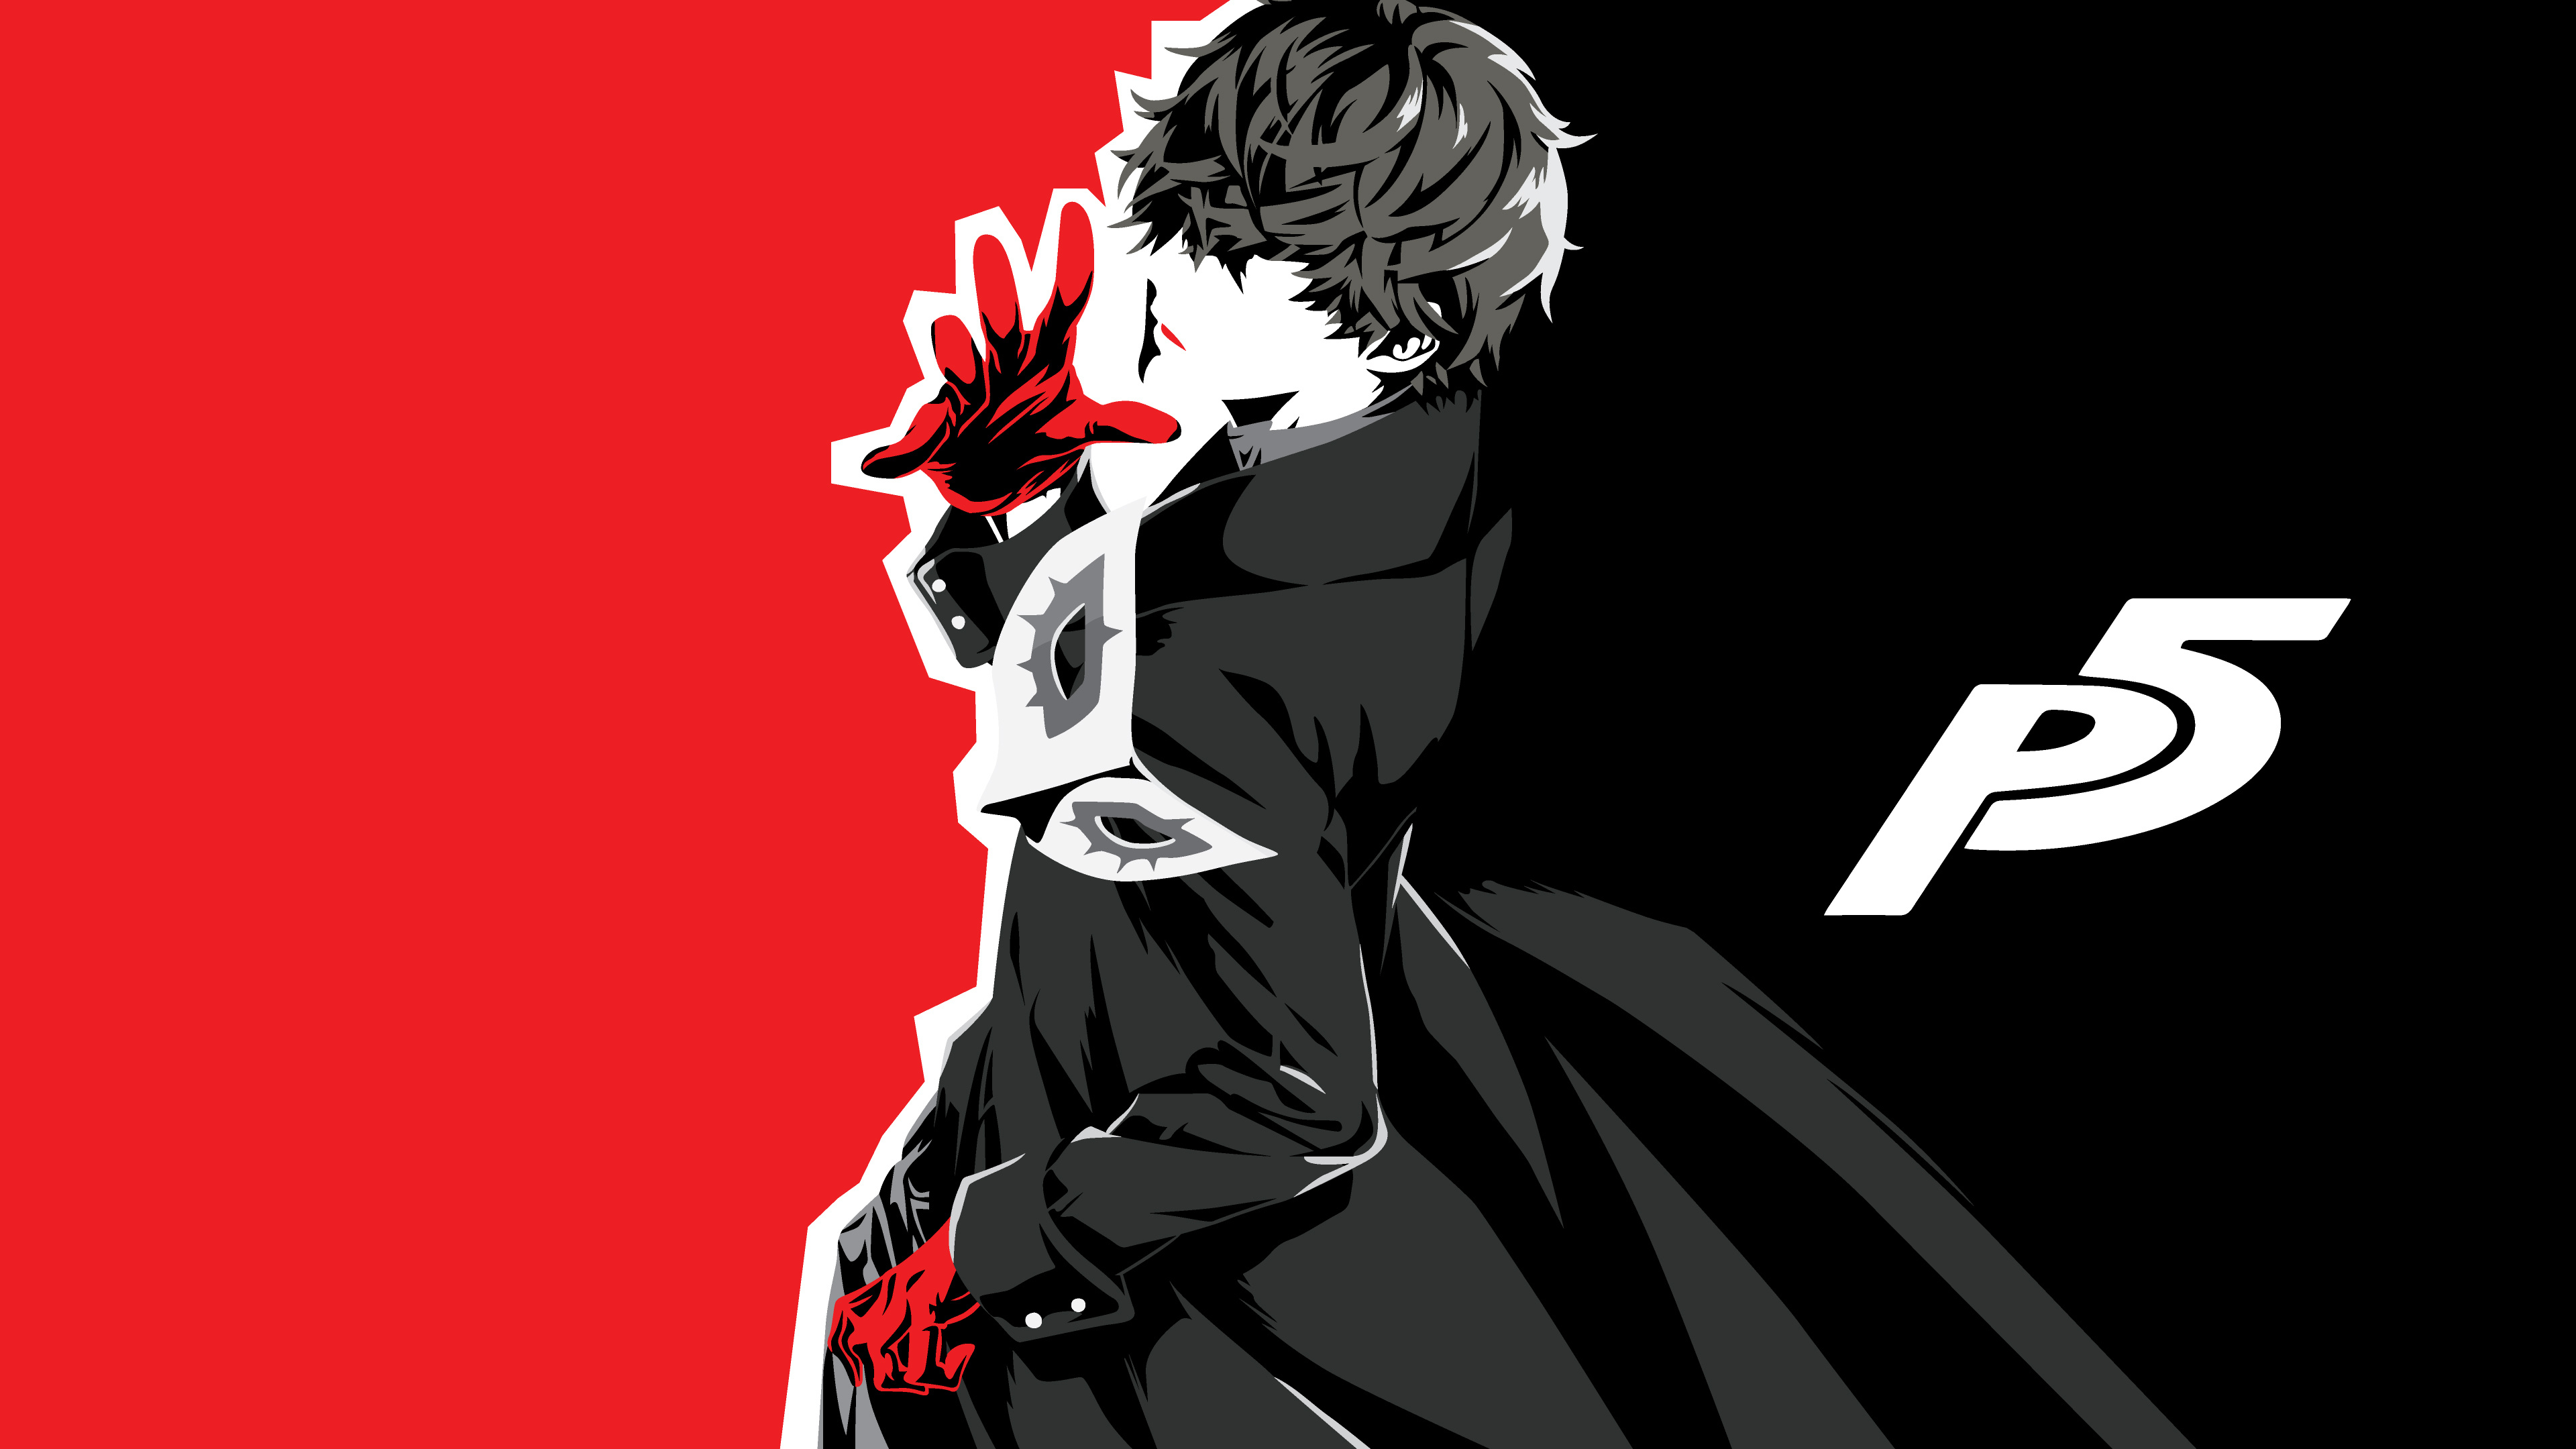 Download 3840x2400 Wallpaper Akira Kurusu Protagonist